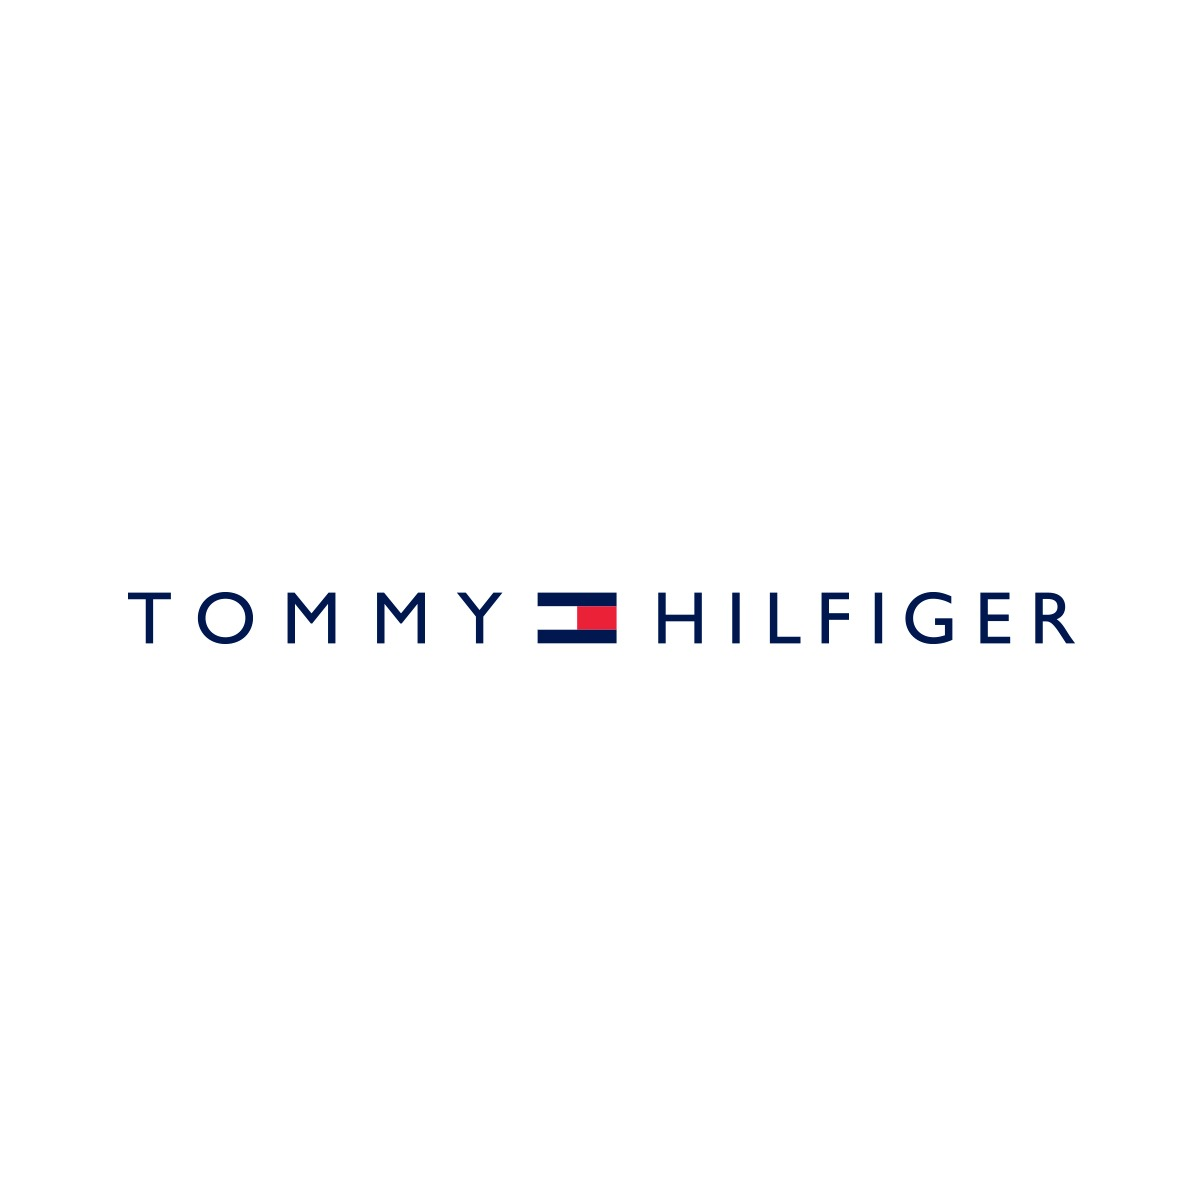 56ce1856608a Tommy Hilfiger is one of the world's leading designer lifestyle brands that  shares its inclusive and youthful spirit with consumers worldwide